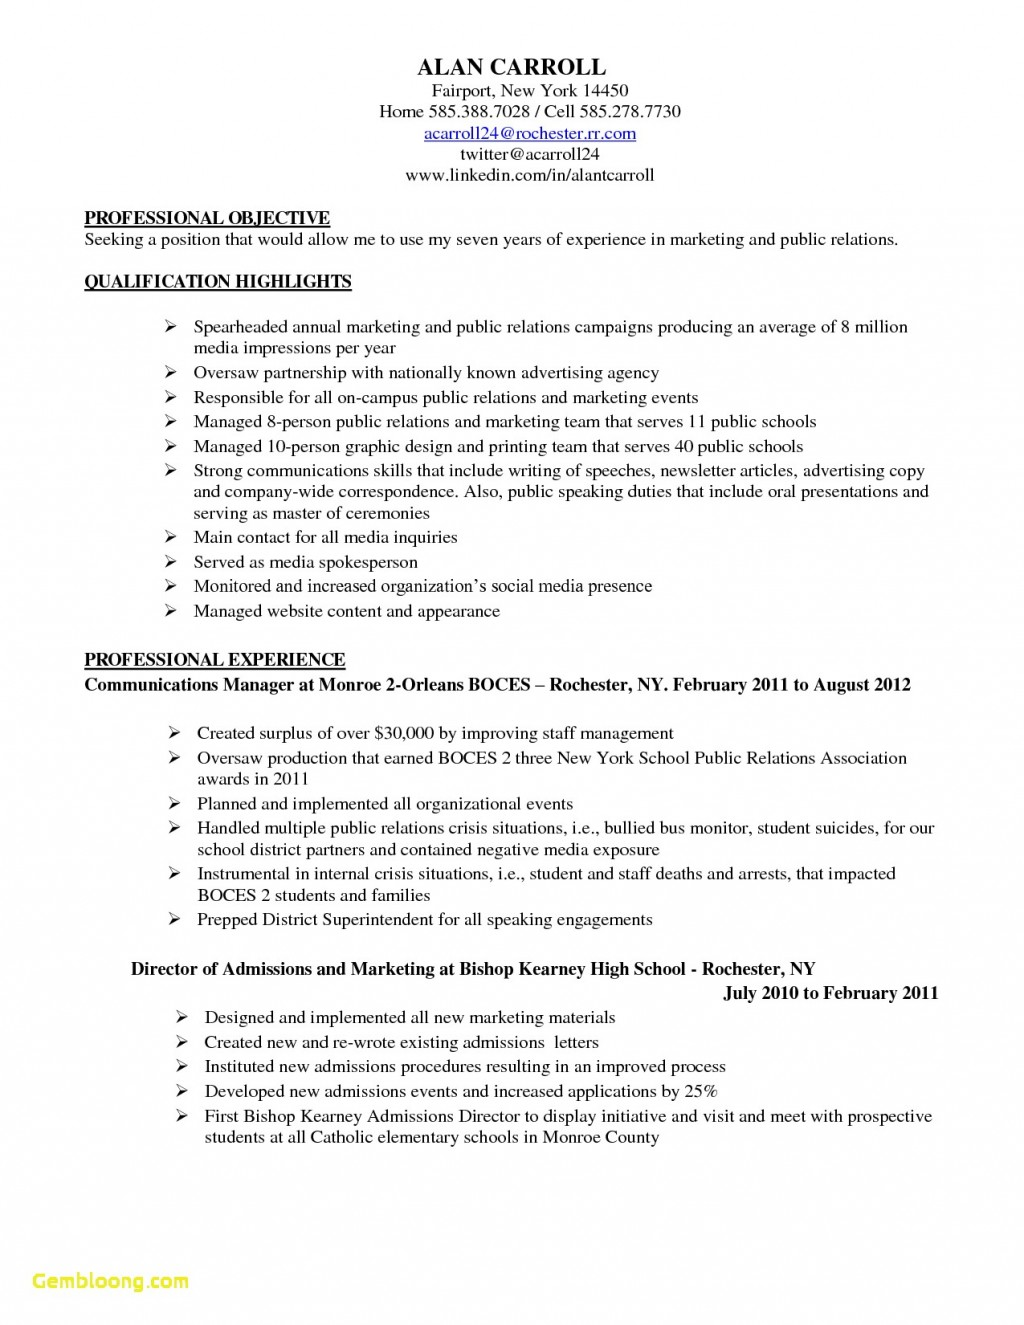 021 Public Relations Resume Templates John Proctor Character Analysis Essay An Paper Of Wondrous Introduction Lord The Flies Plans Sketch Rubric Large